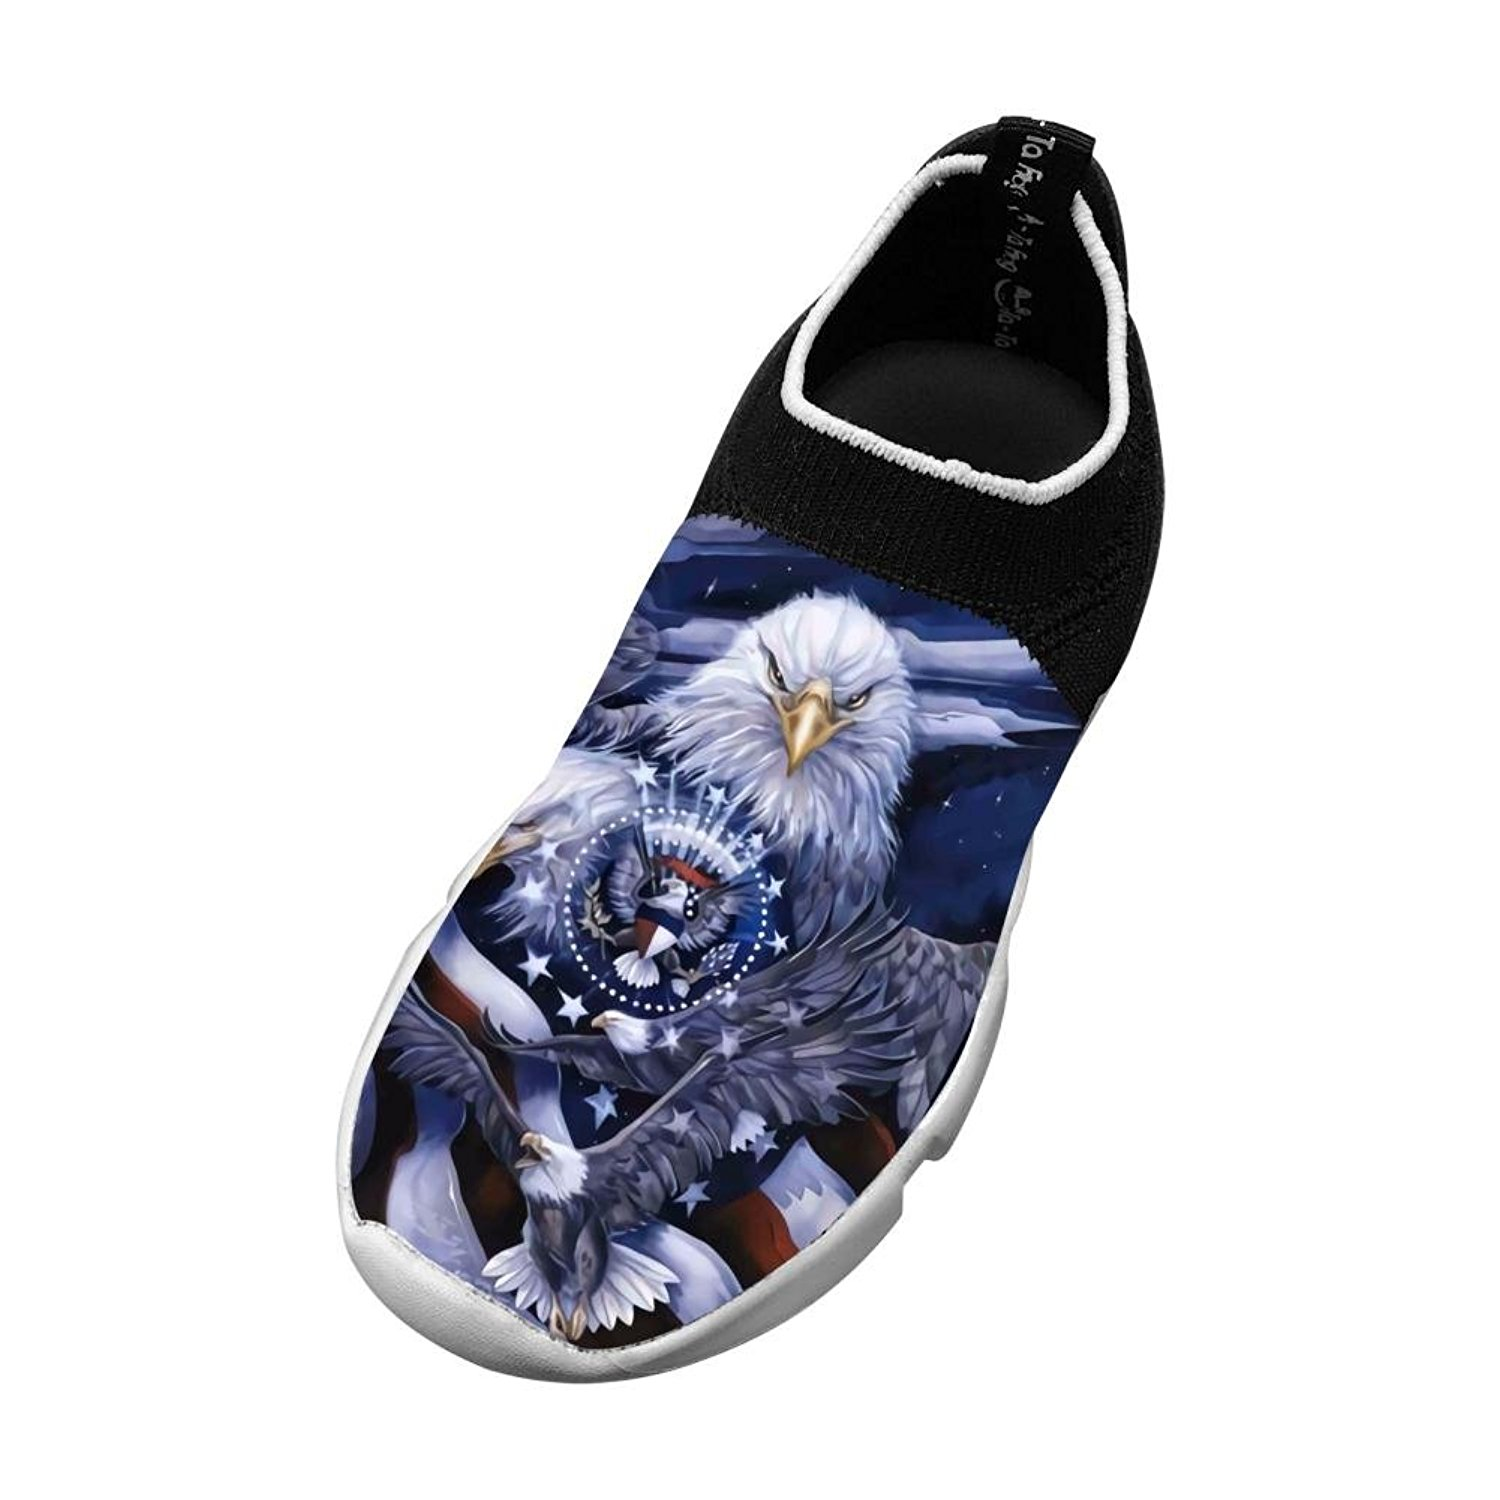 b8612e17 Cheap American Eagles Shoes, find American Eagles Shoes deals on ...